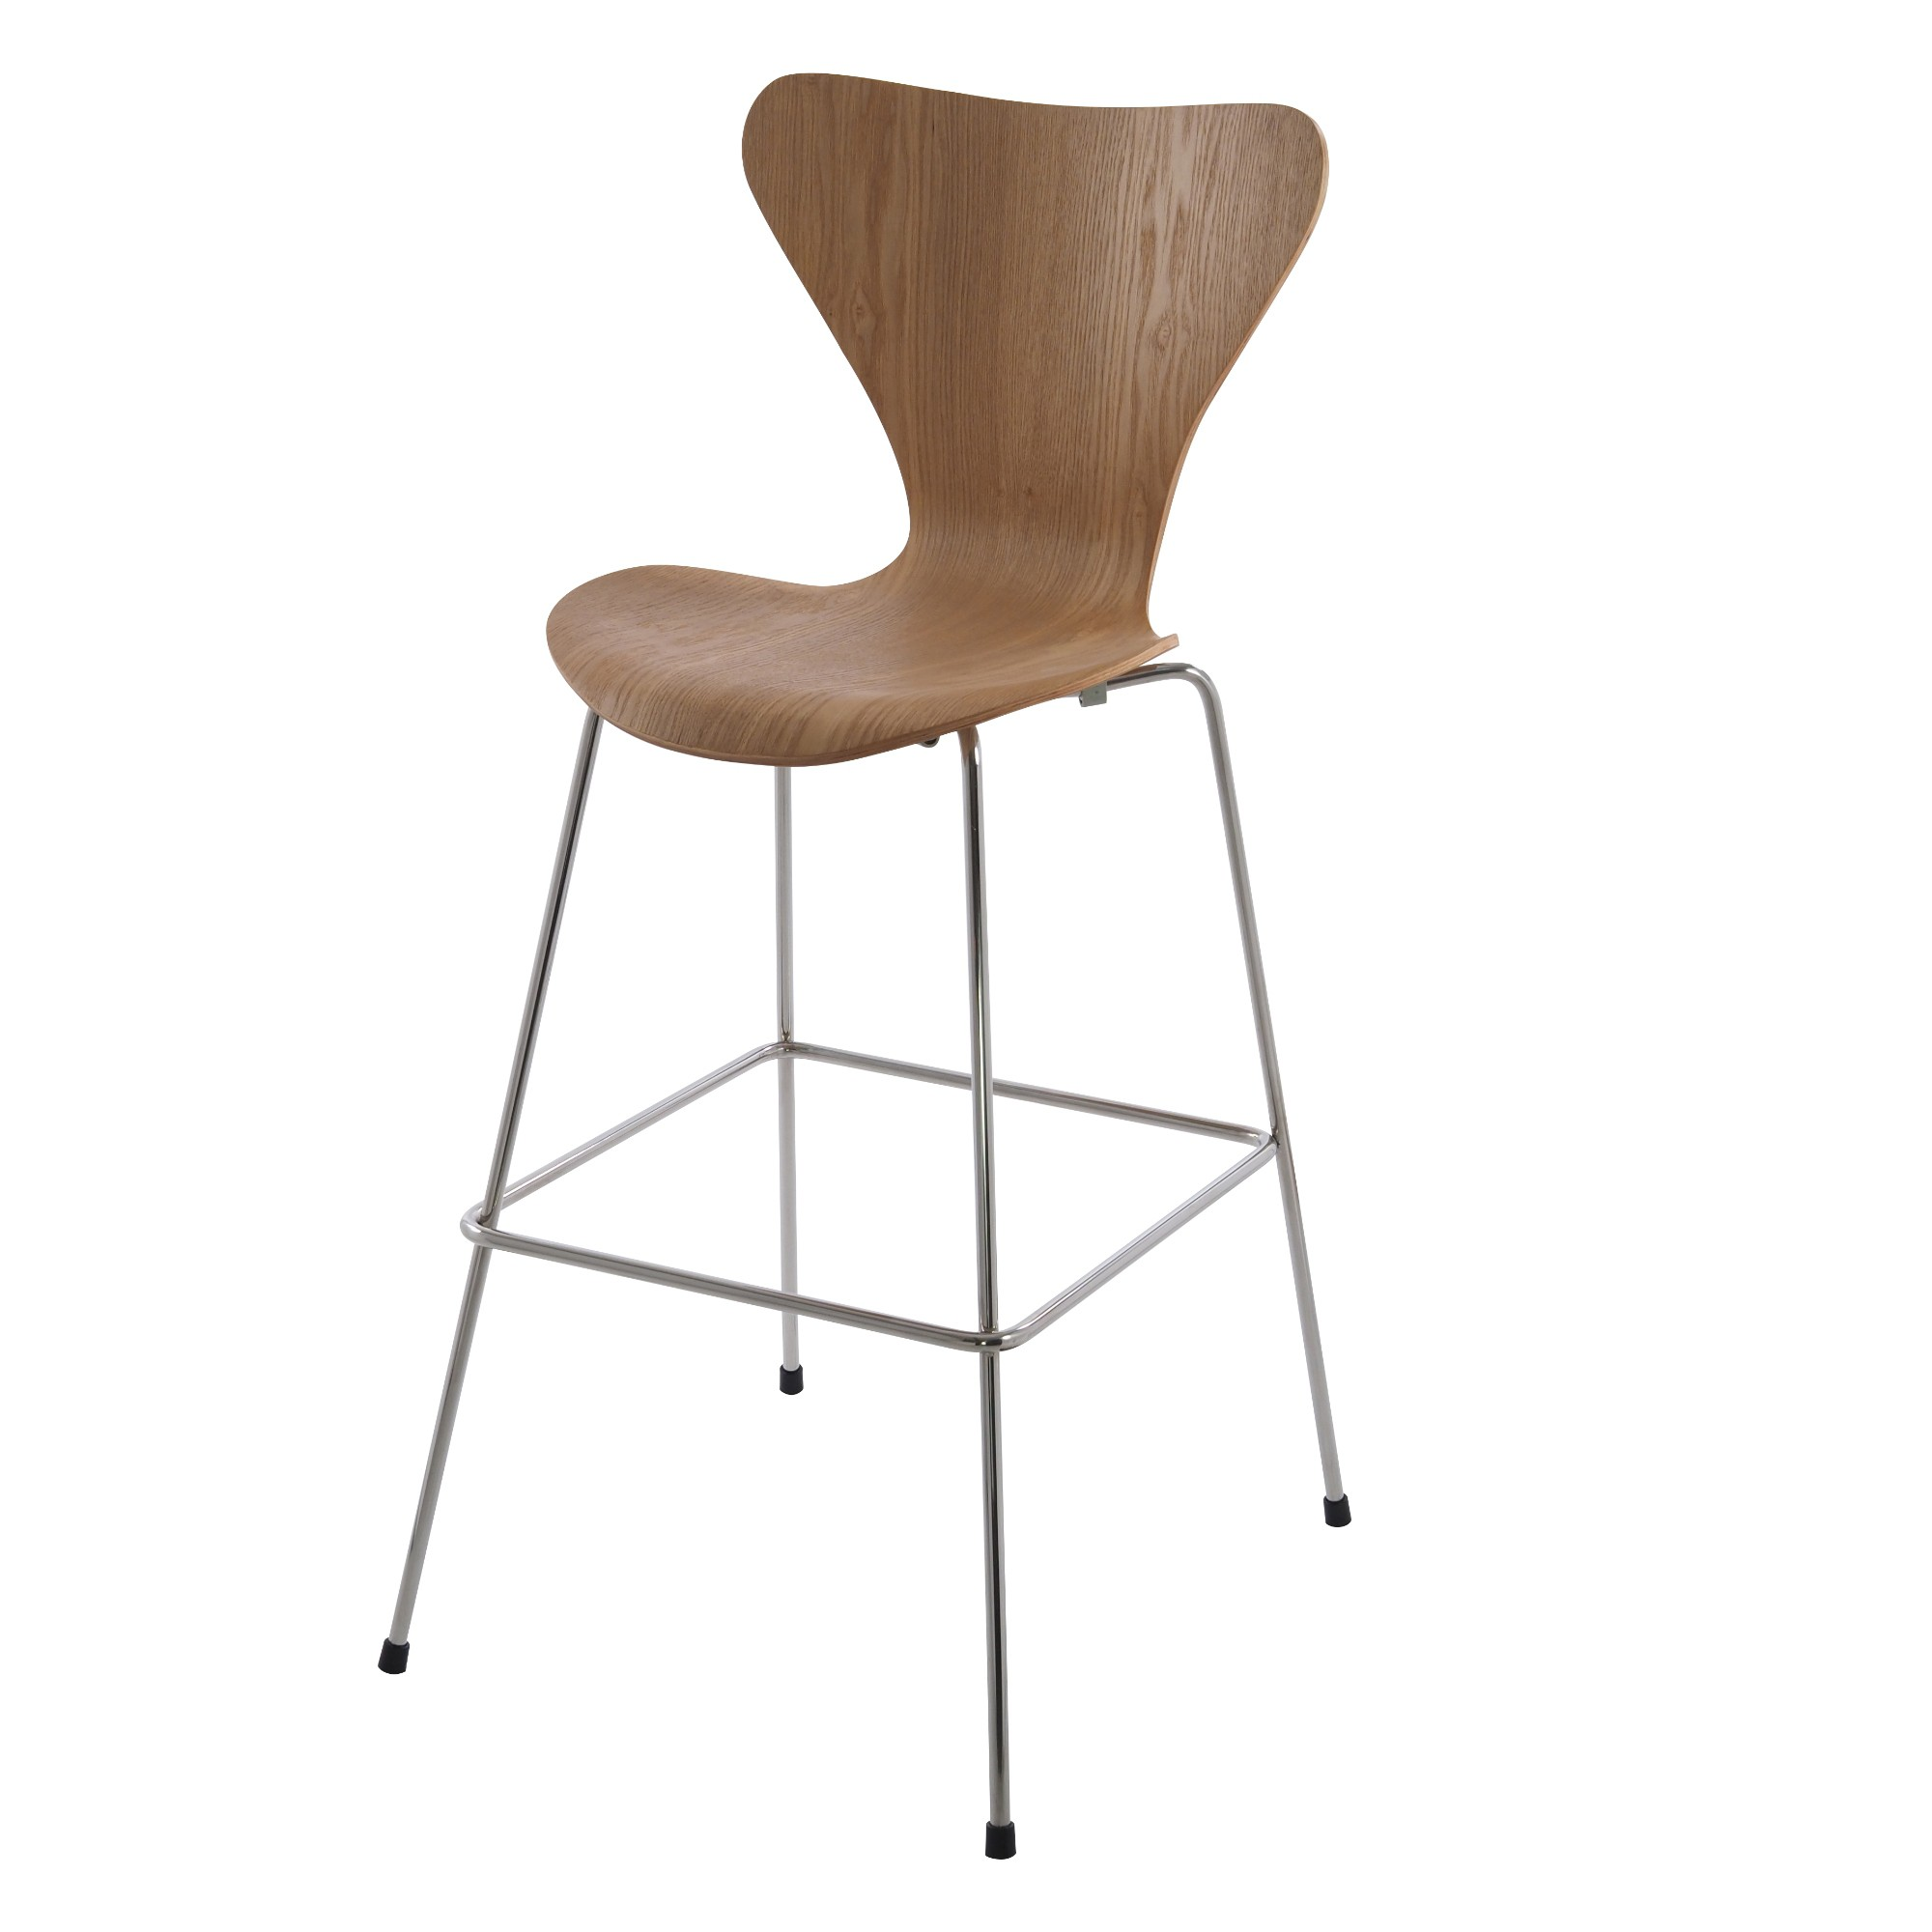 Jacobsen Hocker Butterfly Series 76cm Design Hocker